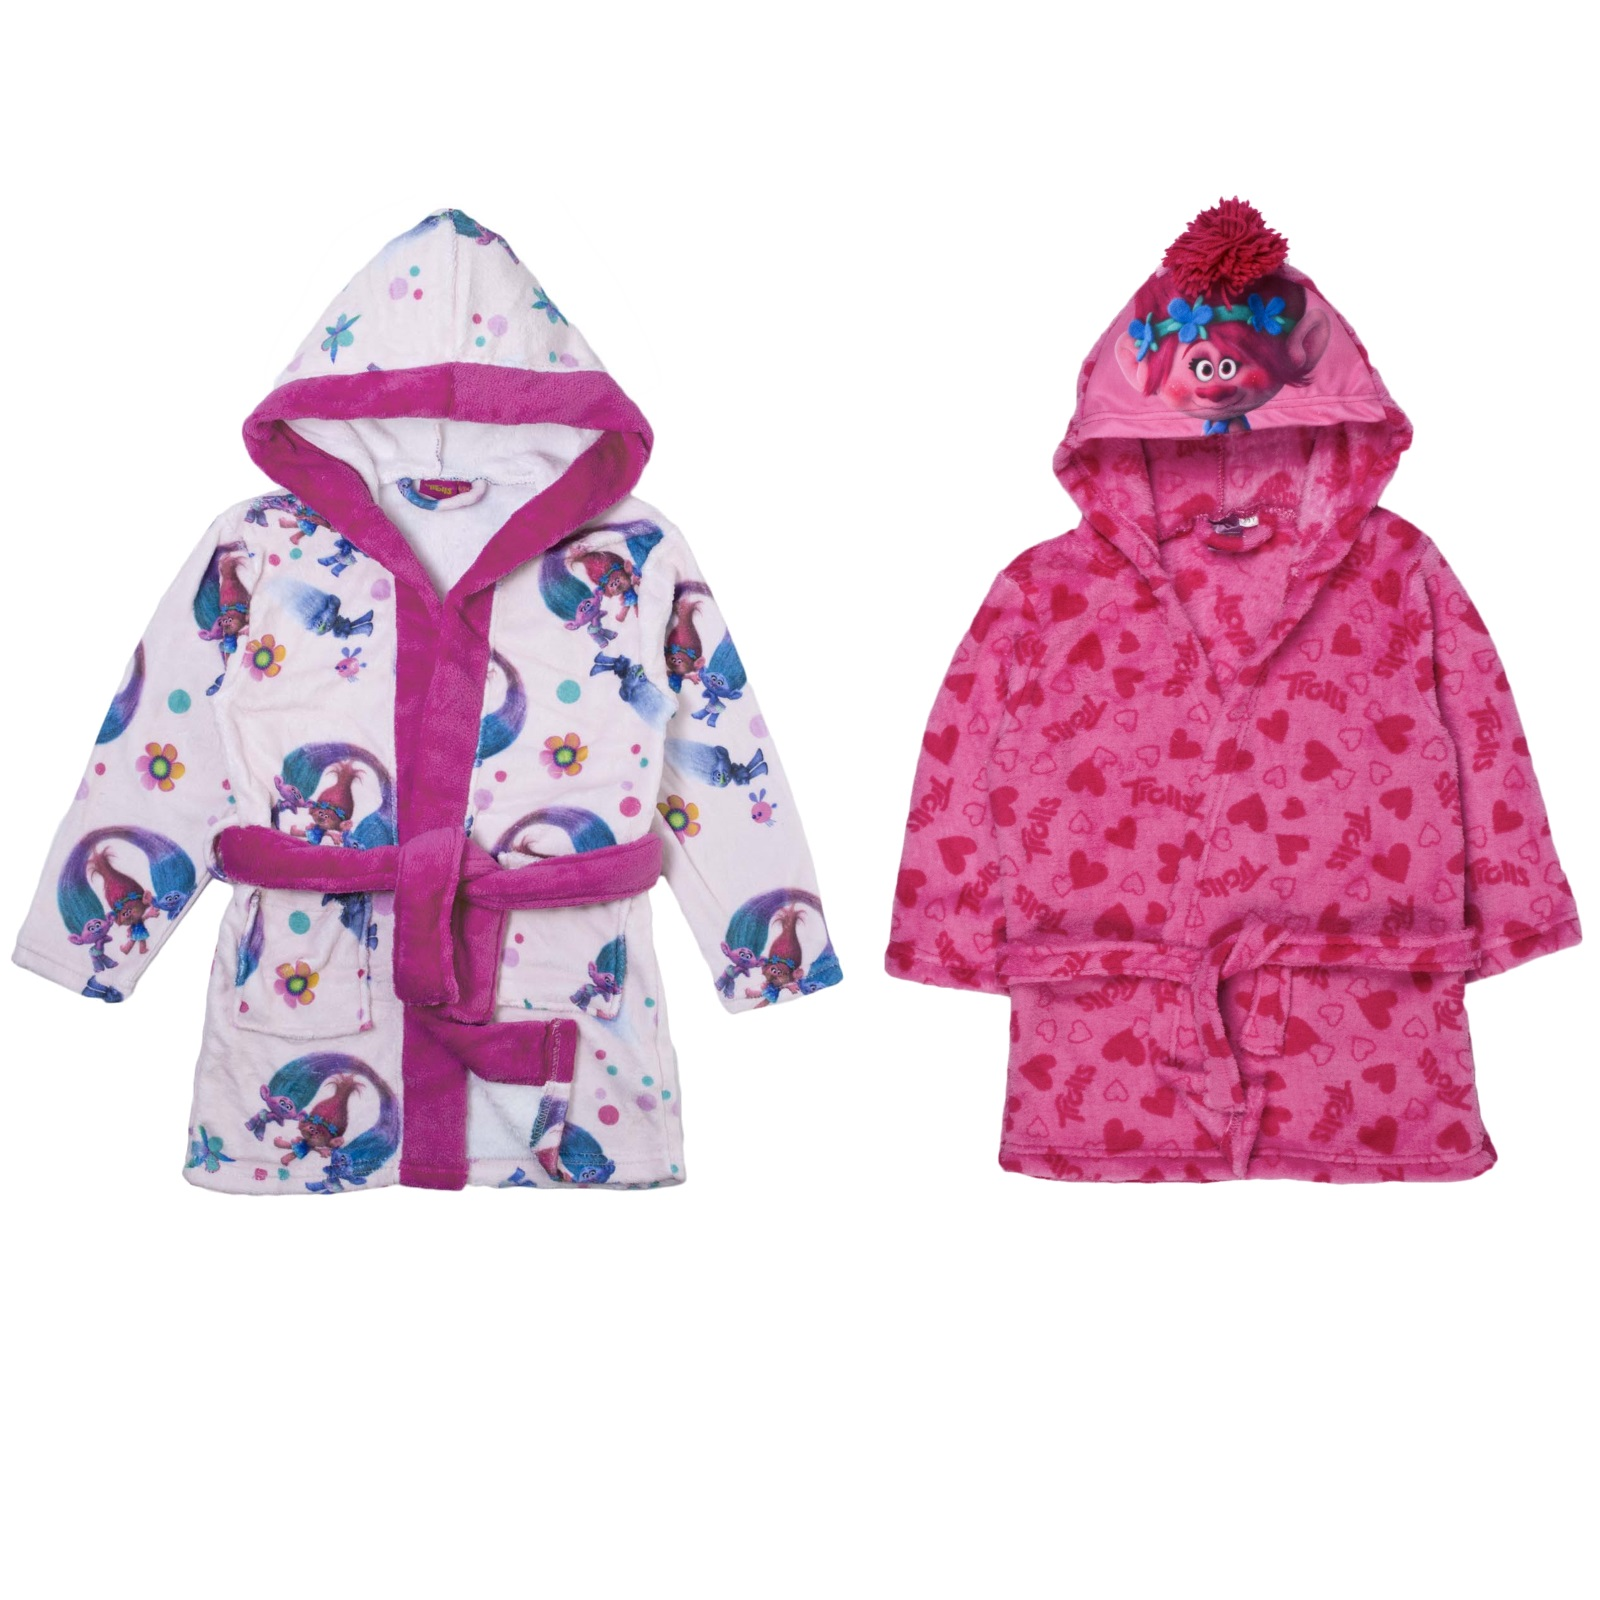 9f7937ee0 Girls Trolls Hooded Fleece Dressing Gown Poppy Satin Pink Bath Robe ...